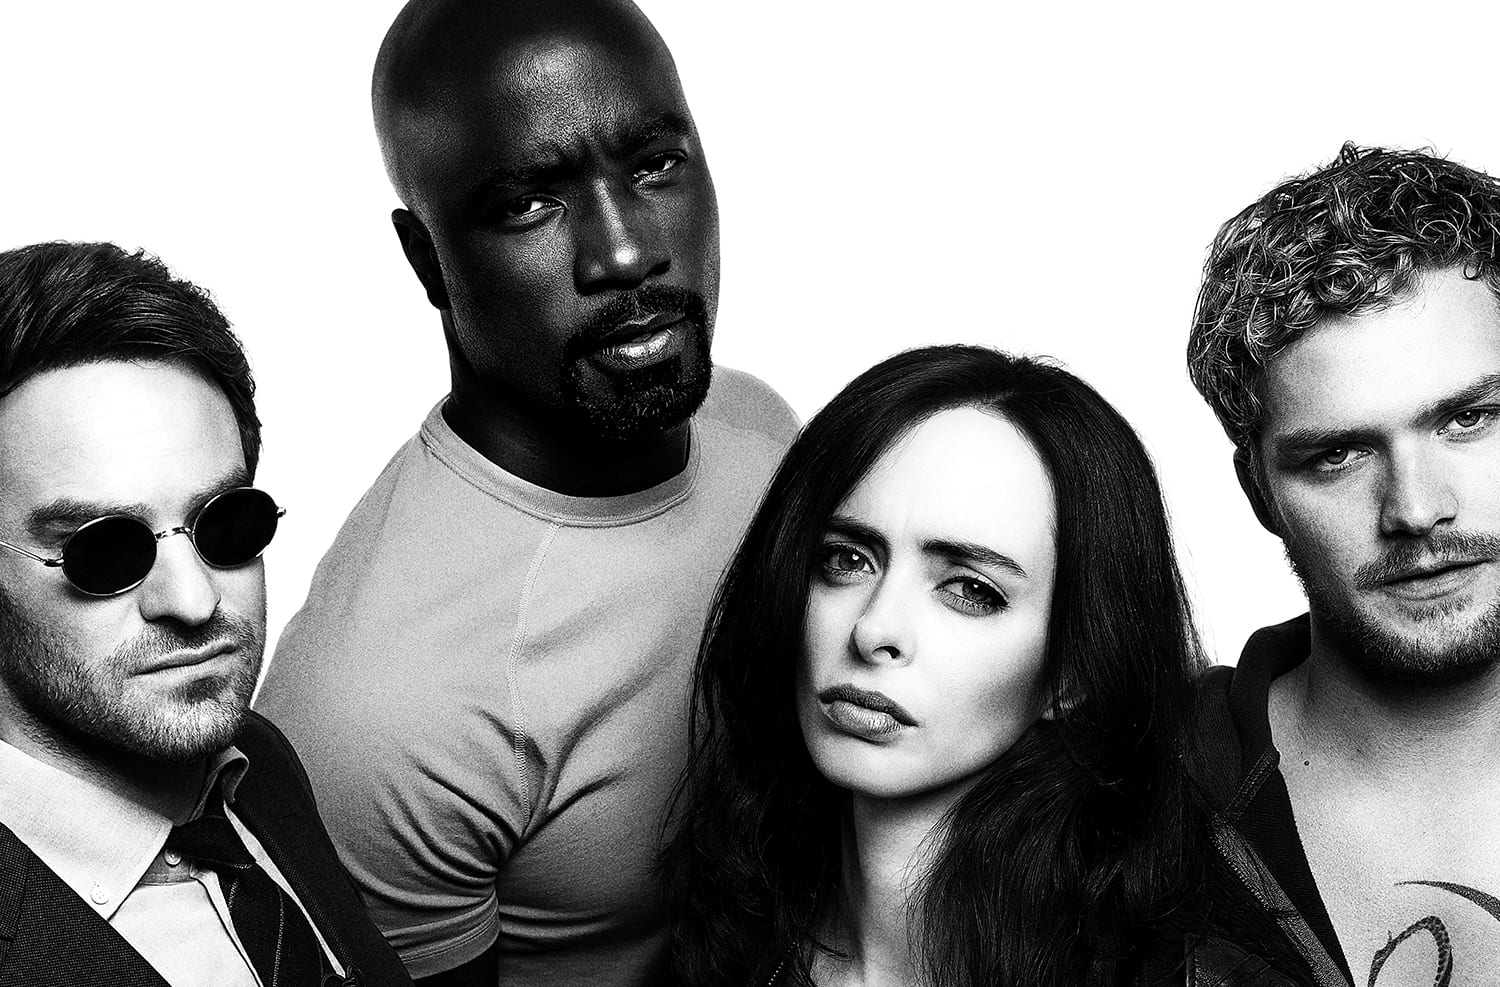 REVIEW – Marvel's The Defenders